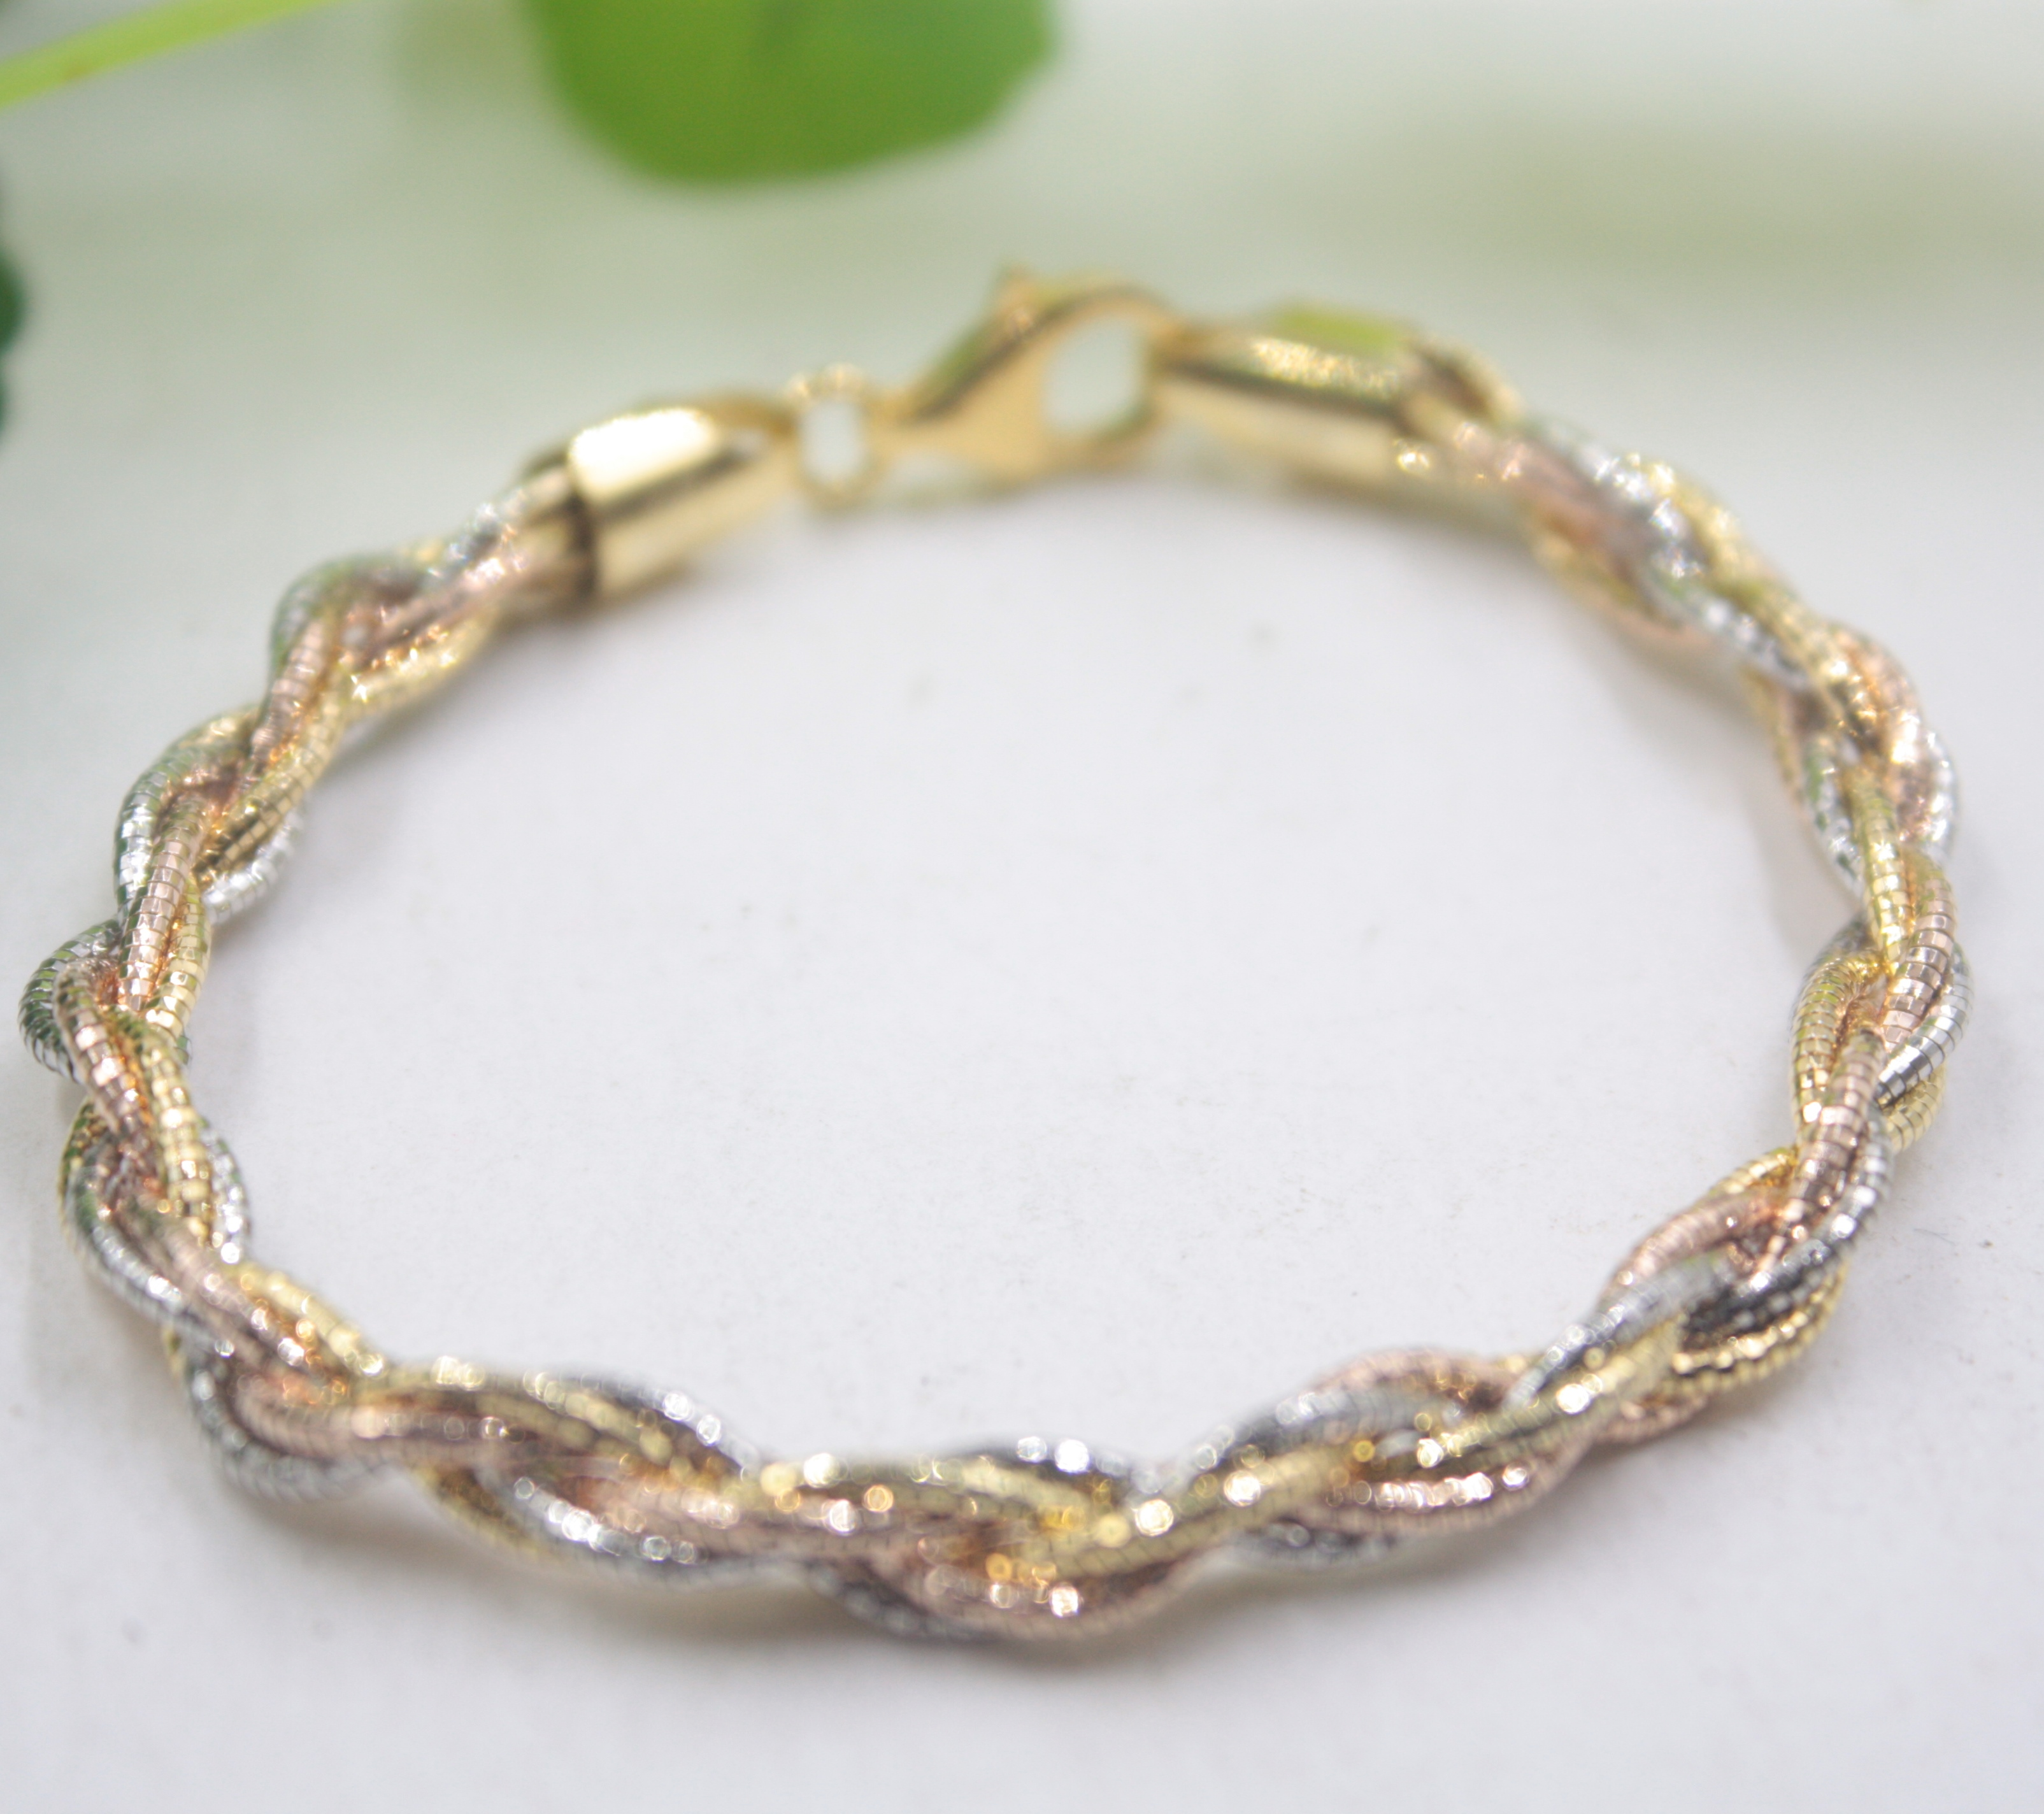 Pure S925 Sterling Silver Bangle For Lover Color Rope Weave Bangle 55-58mm Fashion Friend Gift Hot Sale 5mm